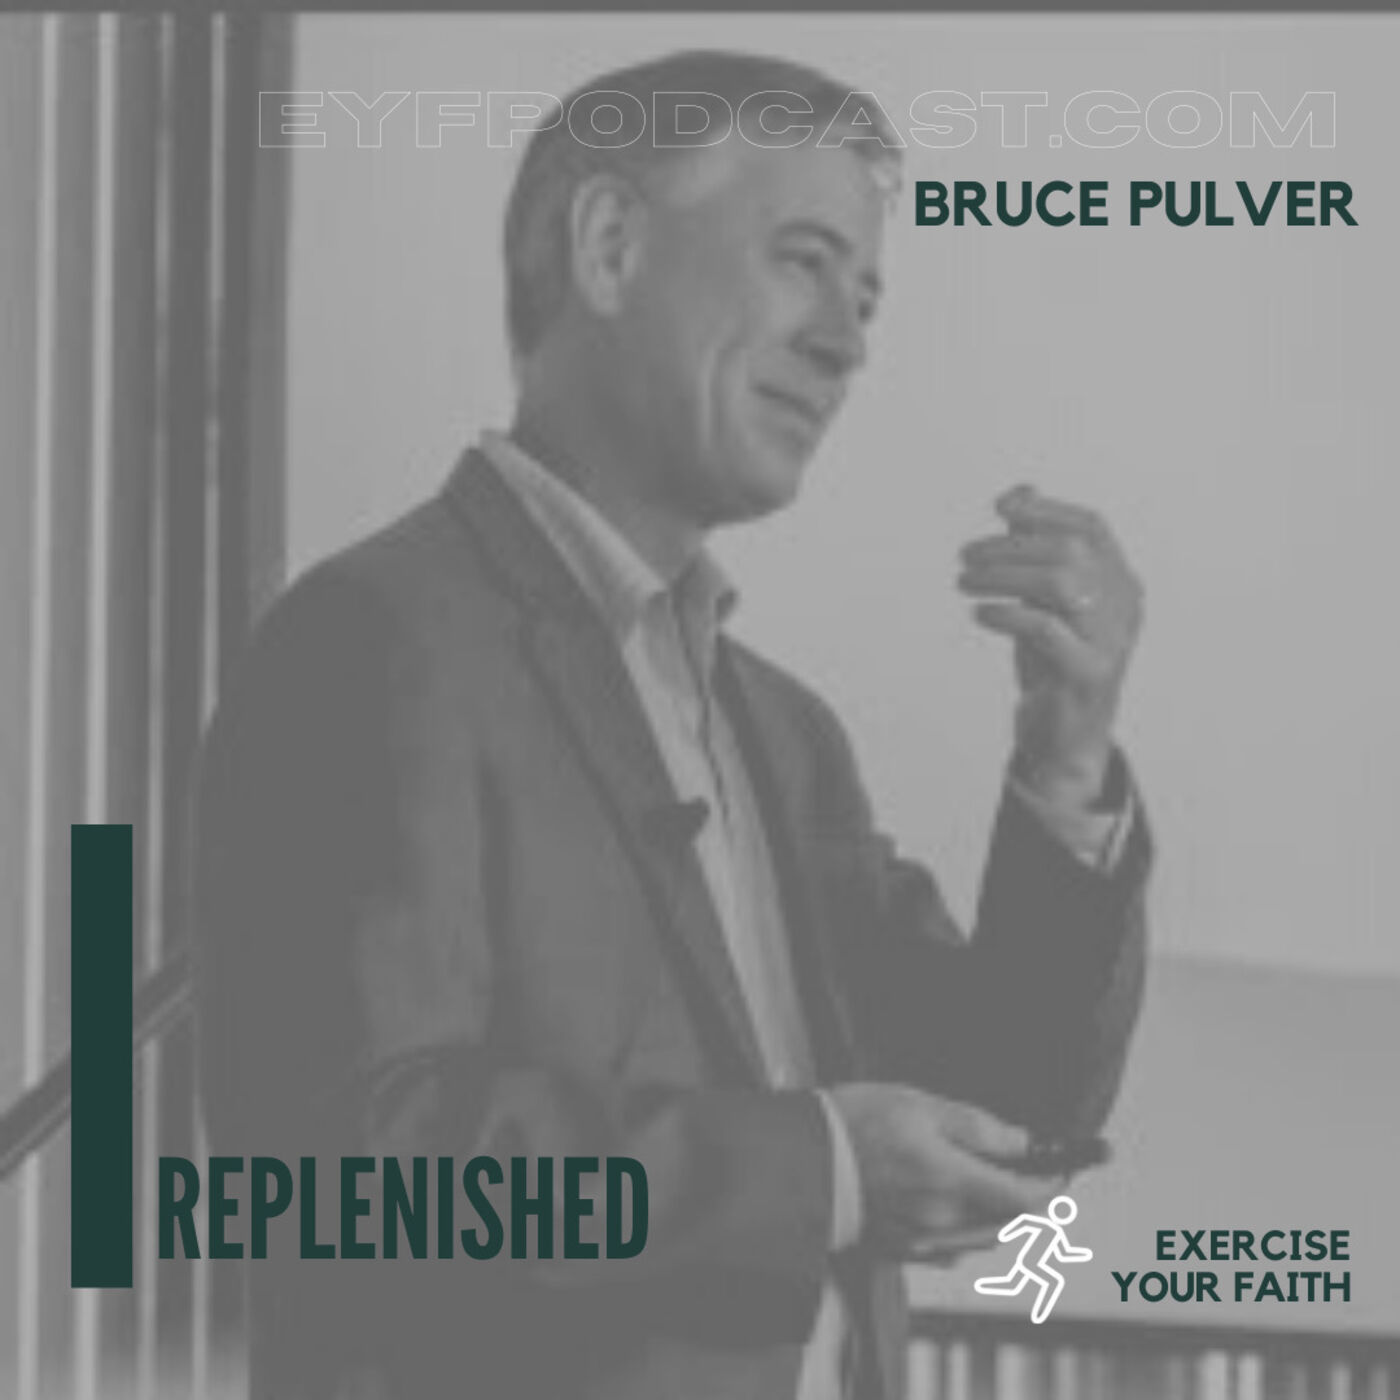 EYFPodcast- Exercise Your Faith with Bruce Pulver today and get REPLENISHED!